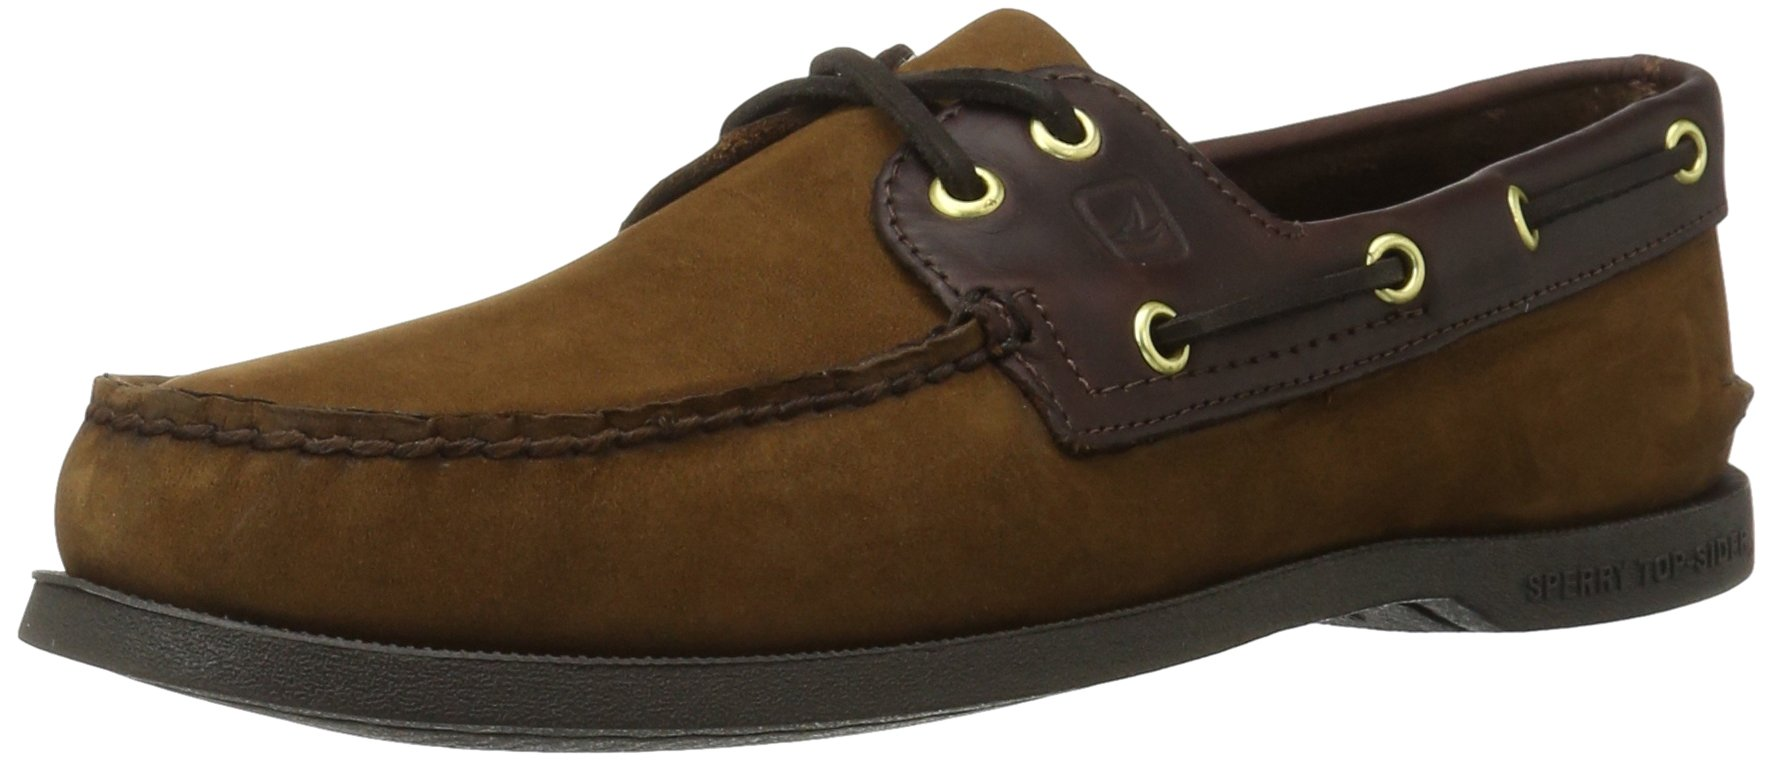 Sperry Top-Sider Men's A/O 2 Eye Boat Shoe,Brown/Buck Brown,9 W US by Sperry Top-Sider